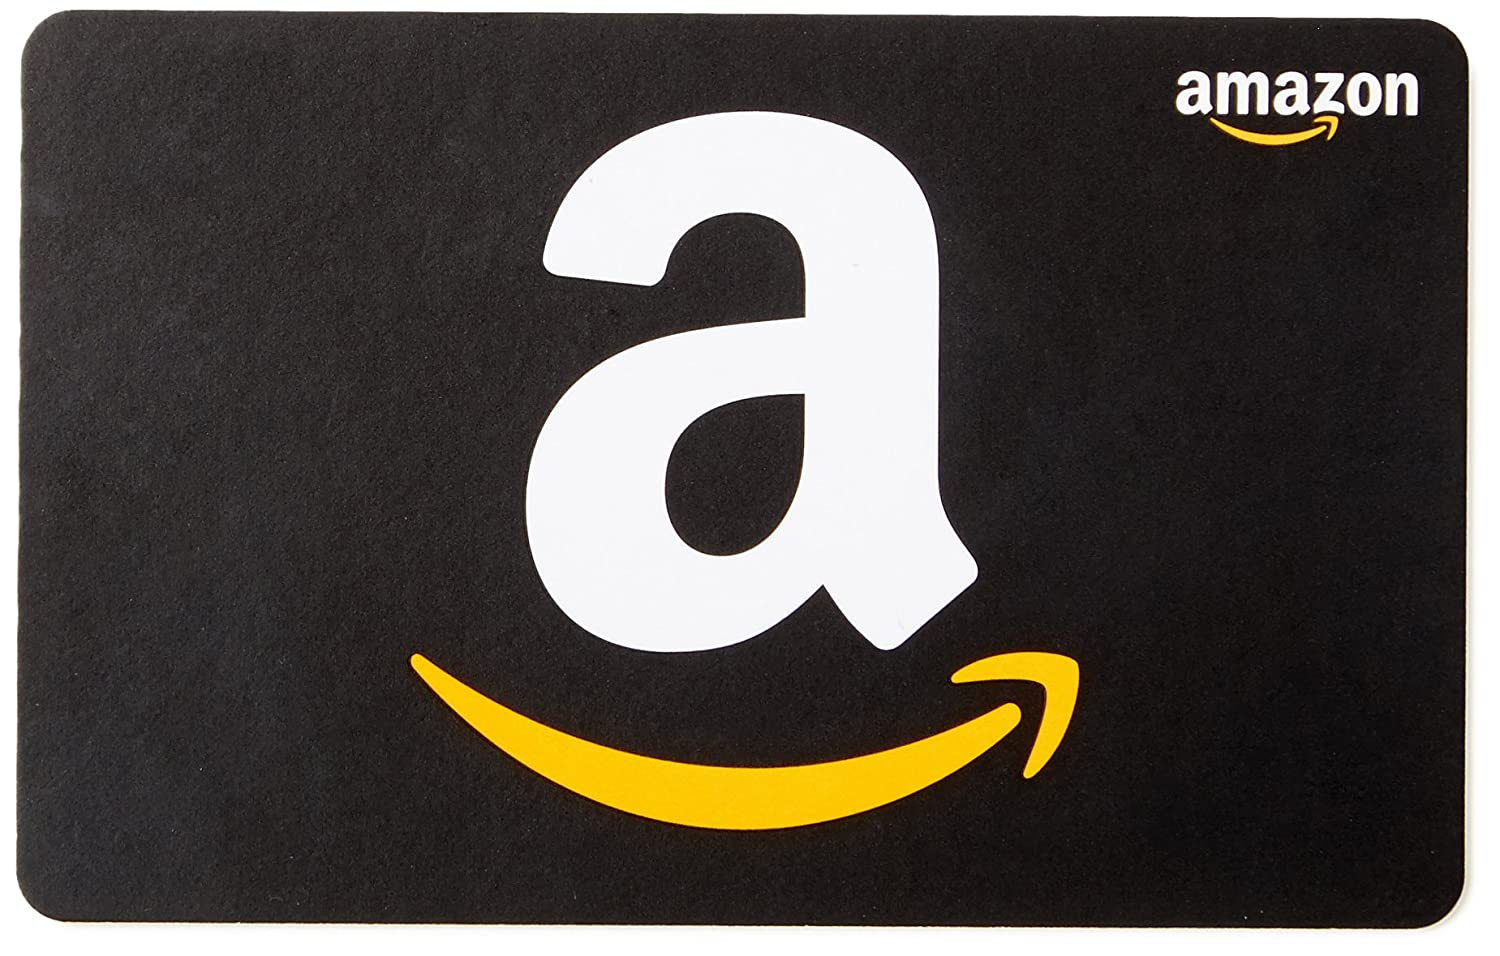 How to Get a Free Amazon Gift card